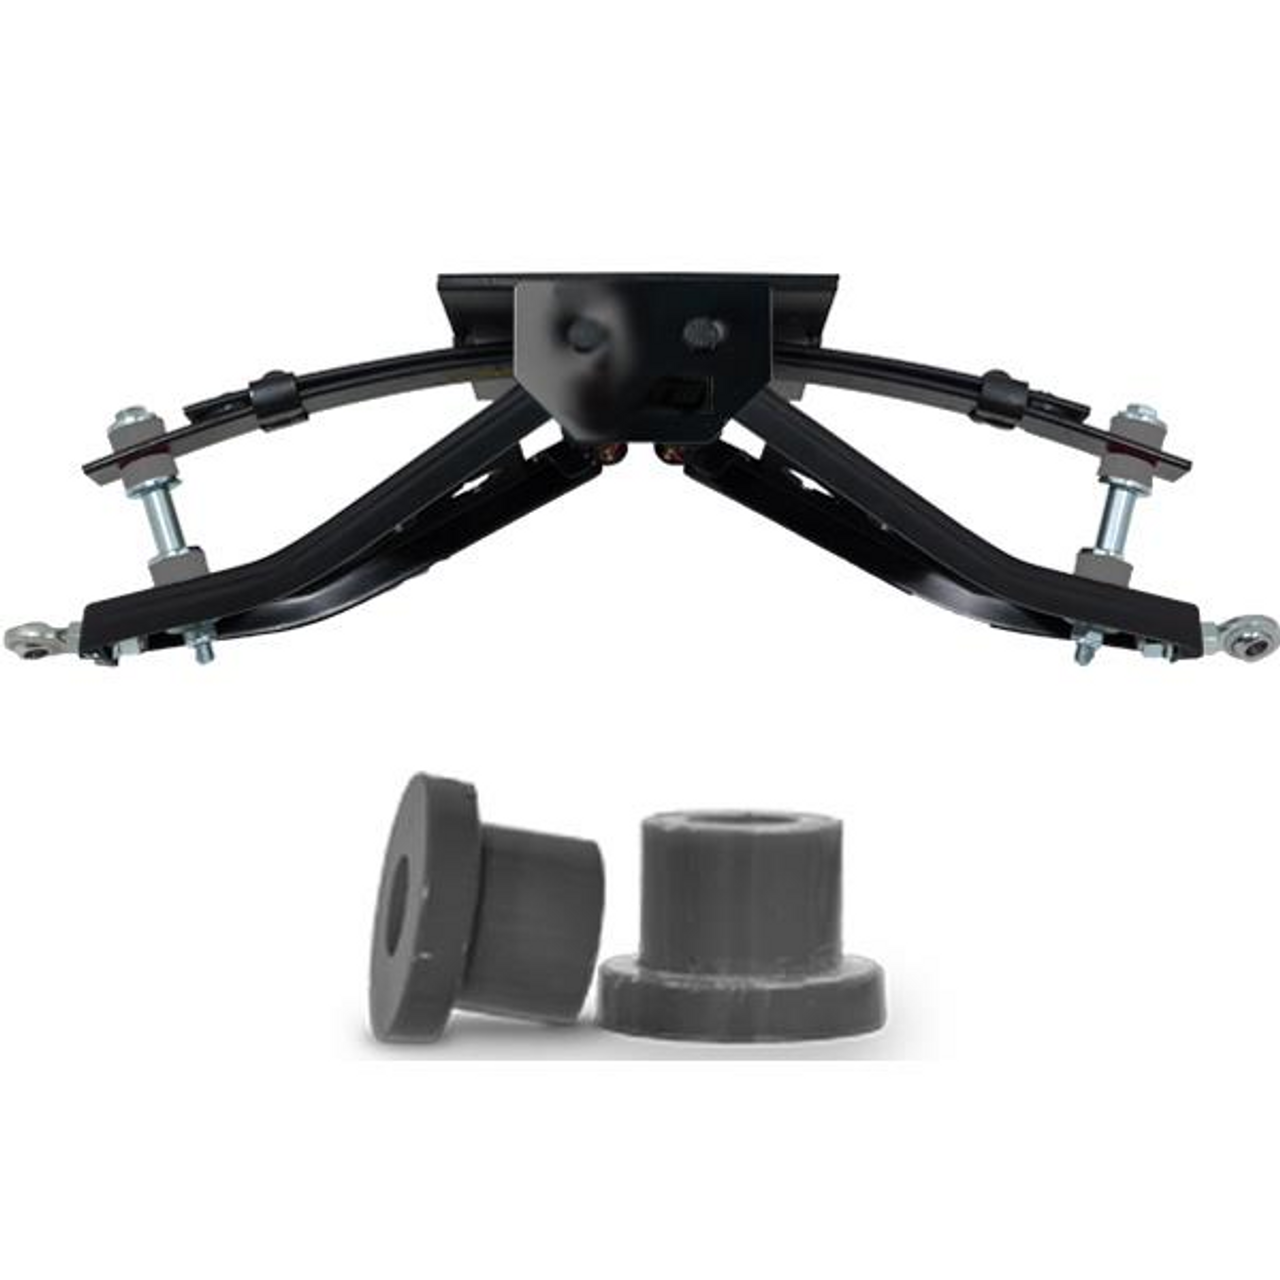 Gray  A-arm Replacement Bushings for GTW & MJFX Lift Kits